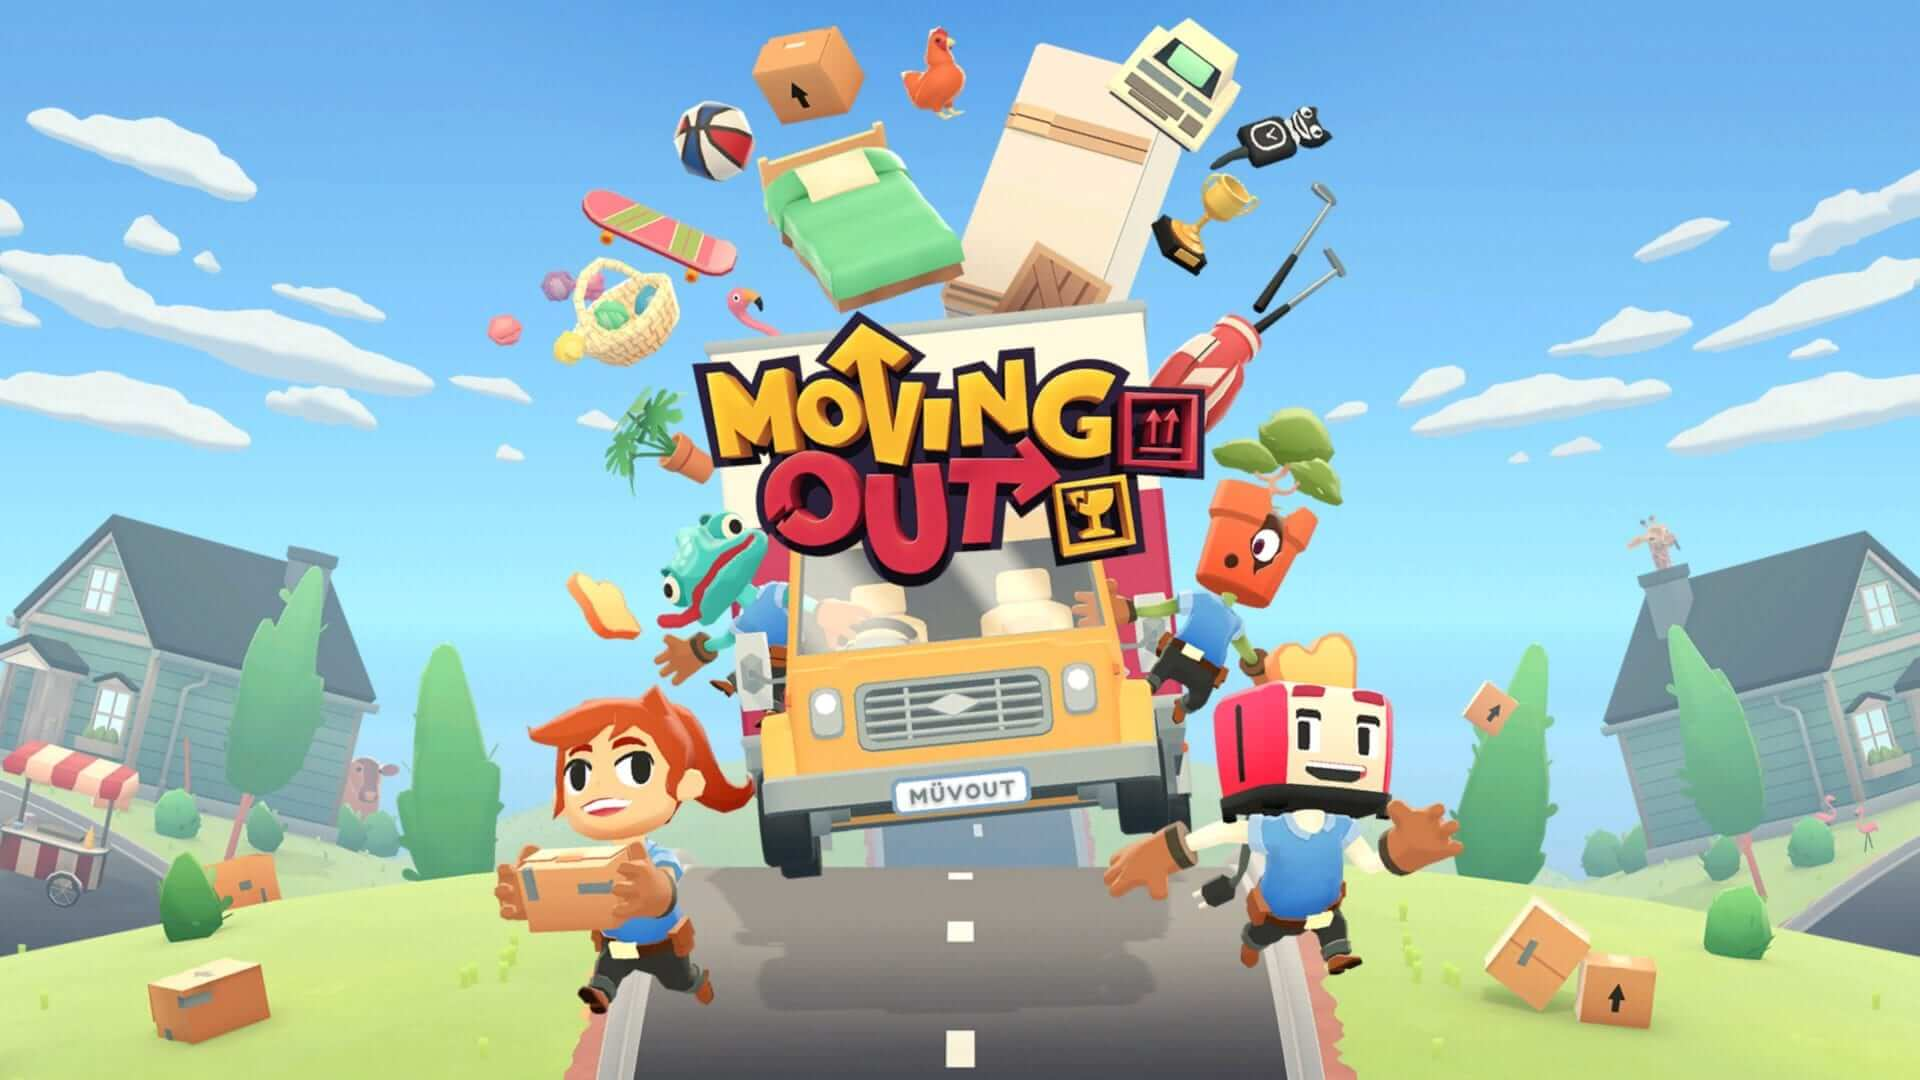 Moving Out Releases To All Major Platforms